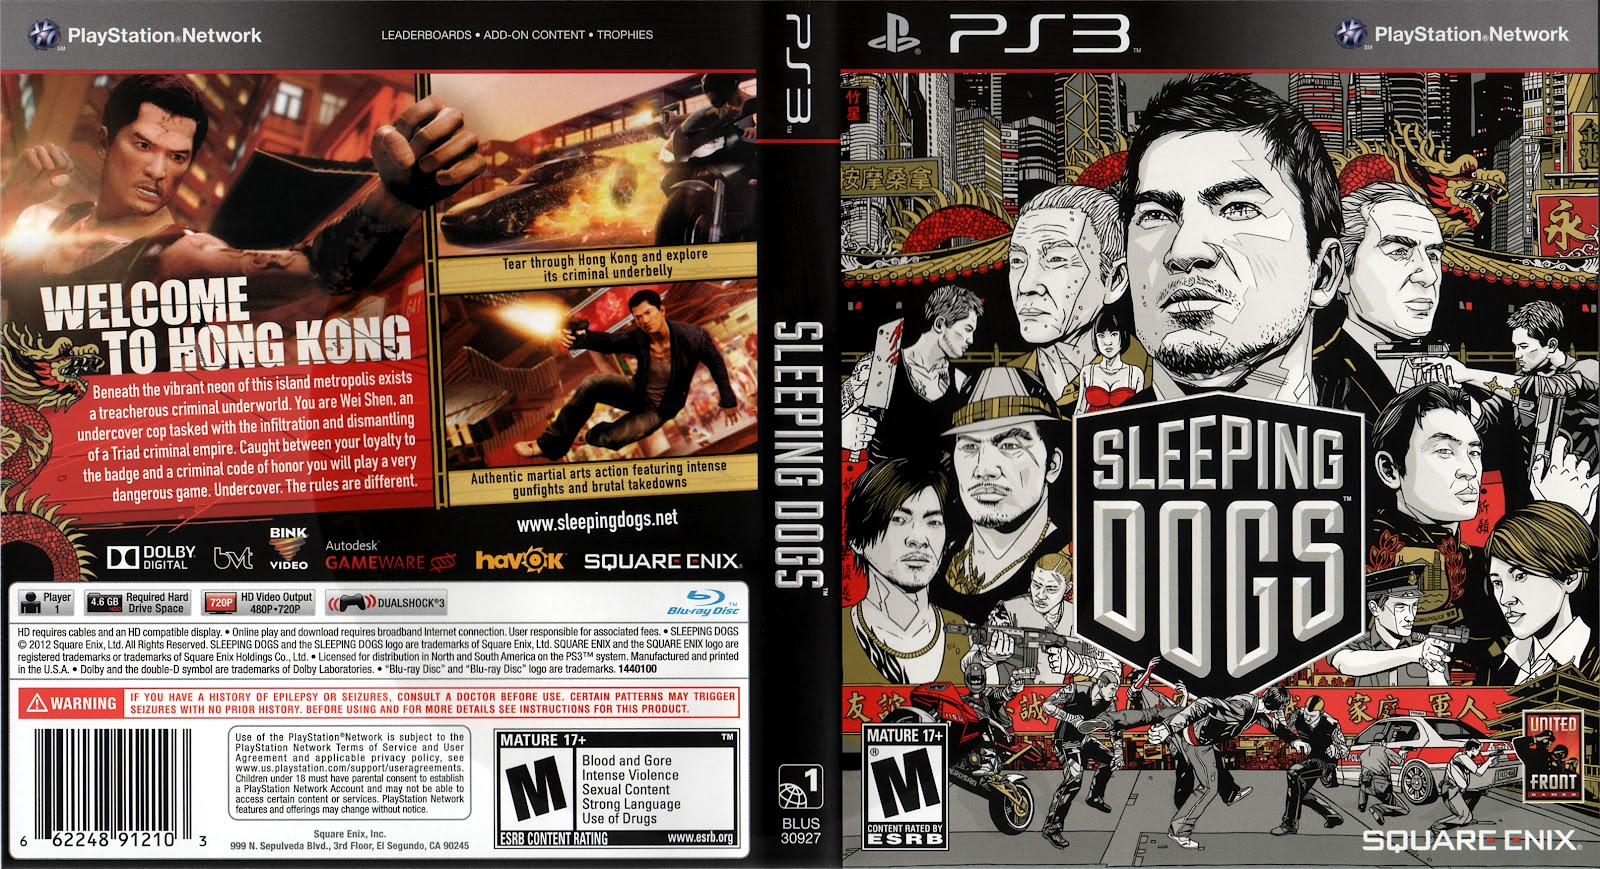 MAGIA DOS GAMES: DOWNLOAD SLEEPING DOGS PS3 !!!!!